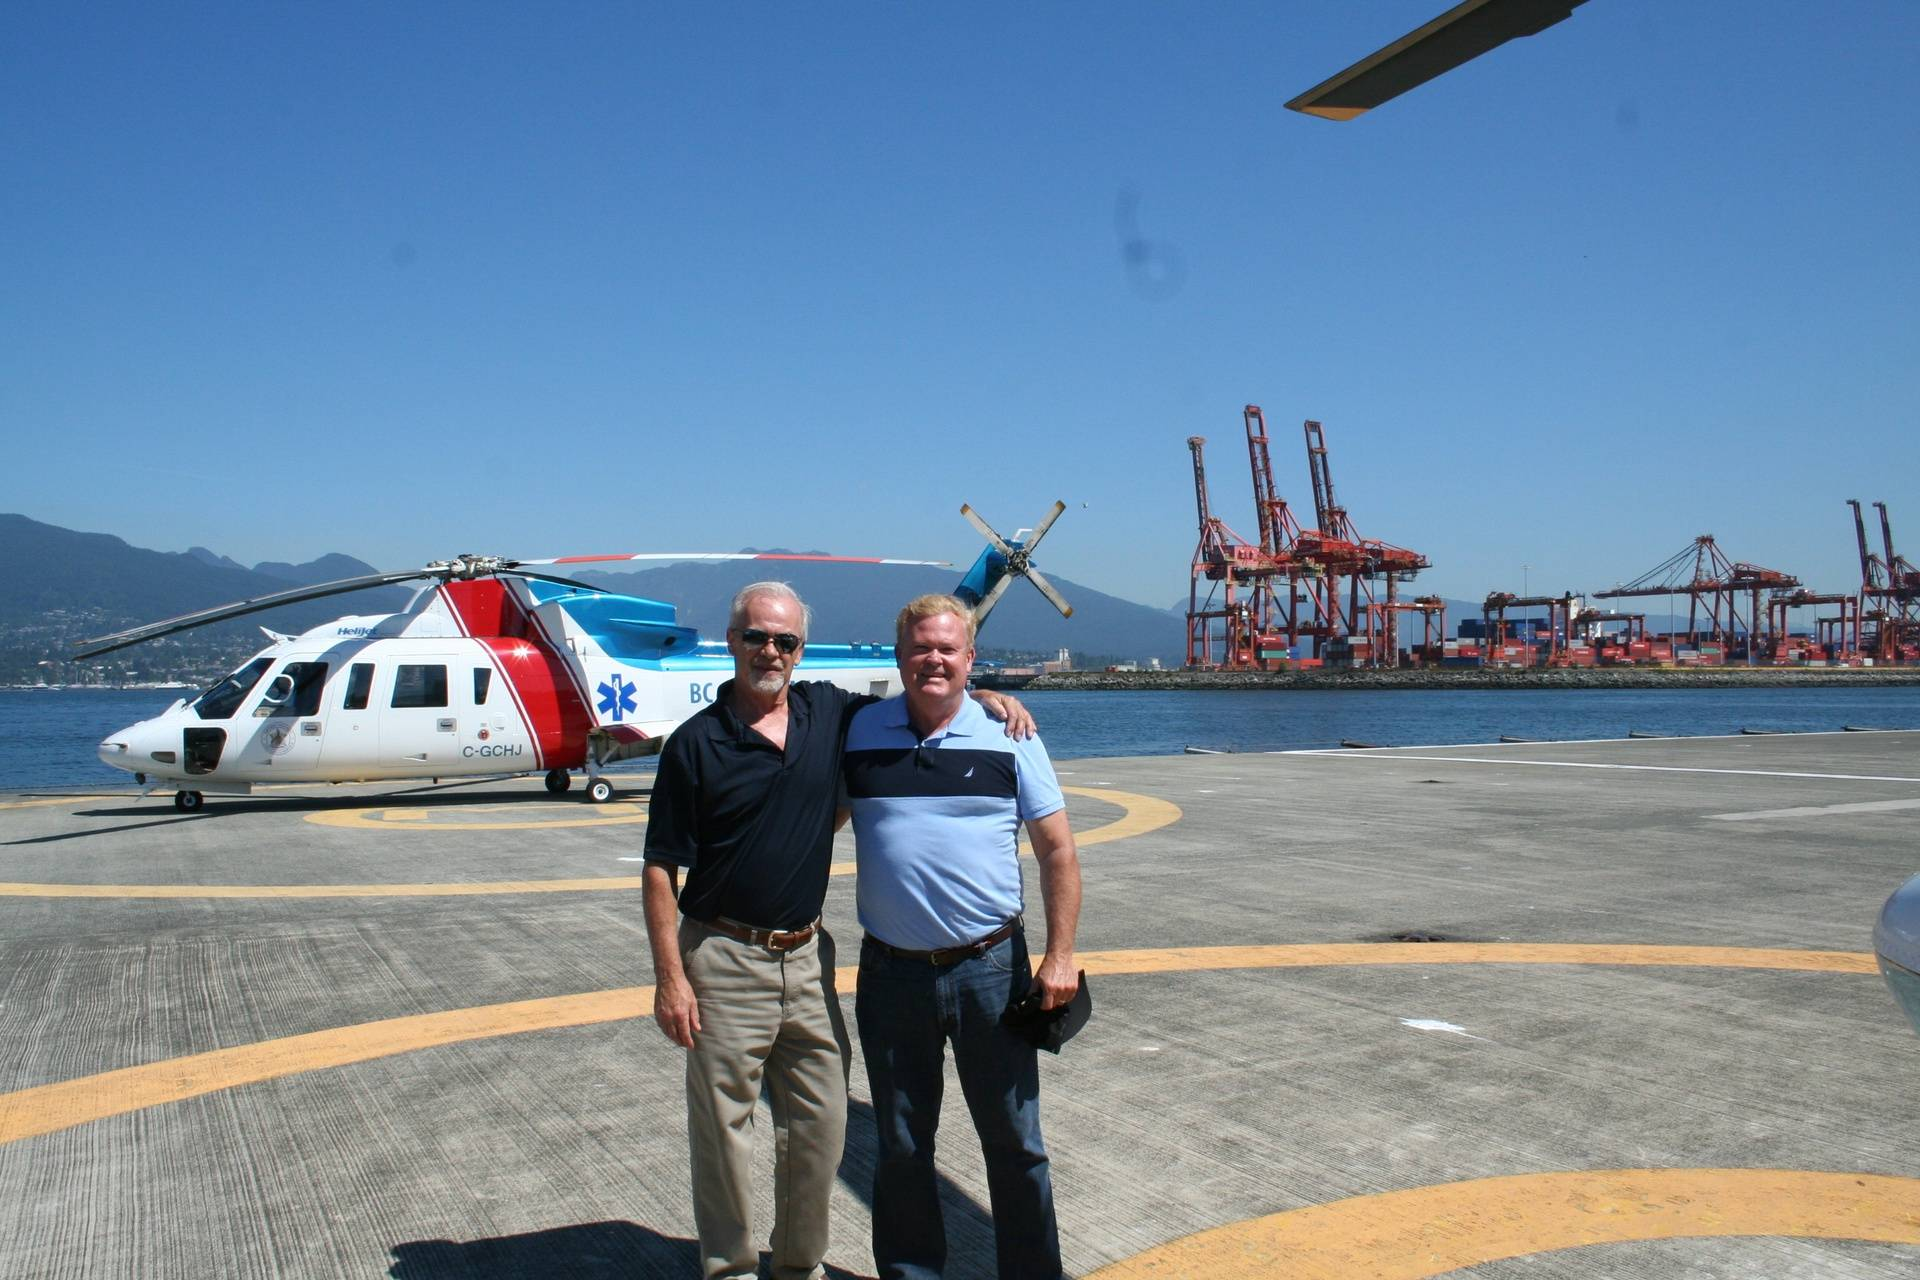 Visiting Helijet project site!